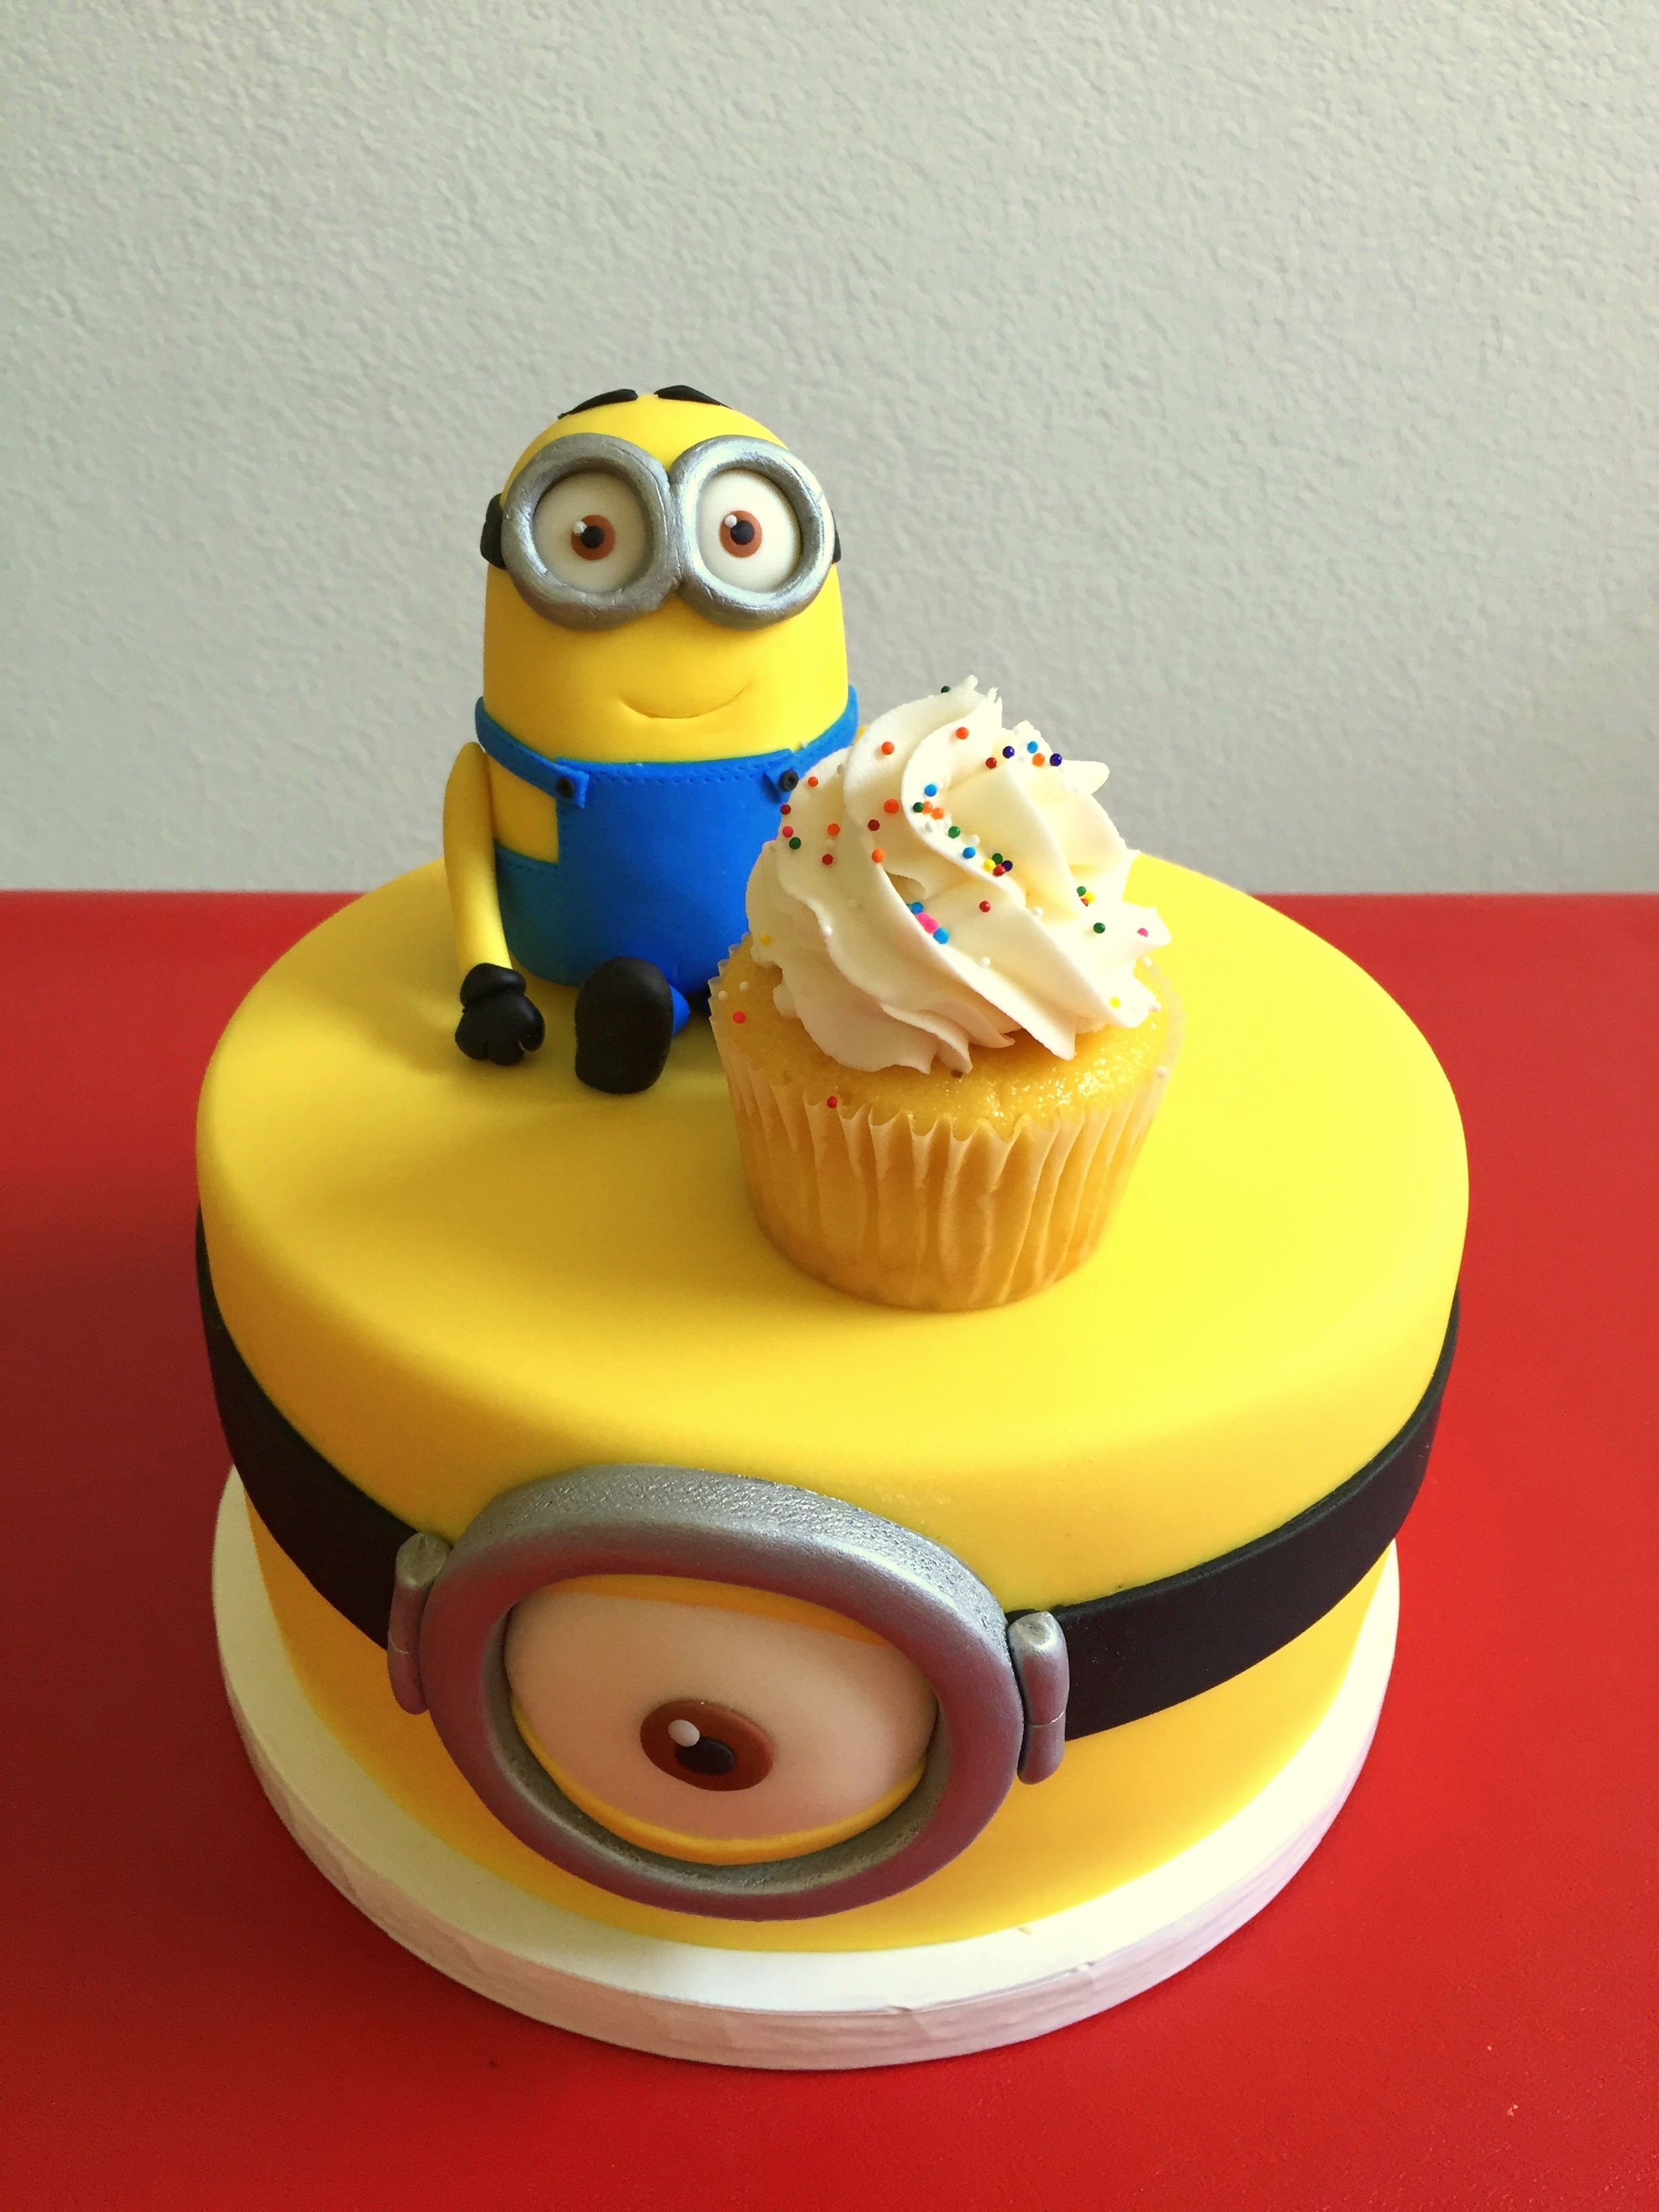 Astonishing Minion Cake With Minion Modeled Cake Topper All Made With Cake Personalised Birthday Cards Cominlily Jamesorg